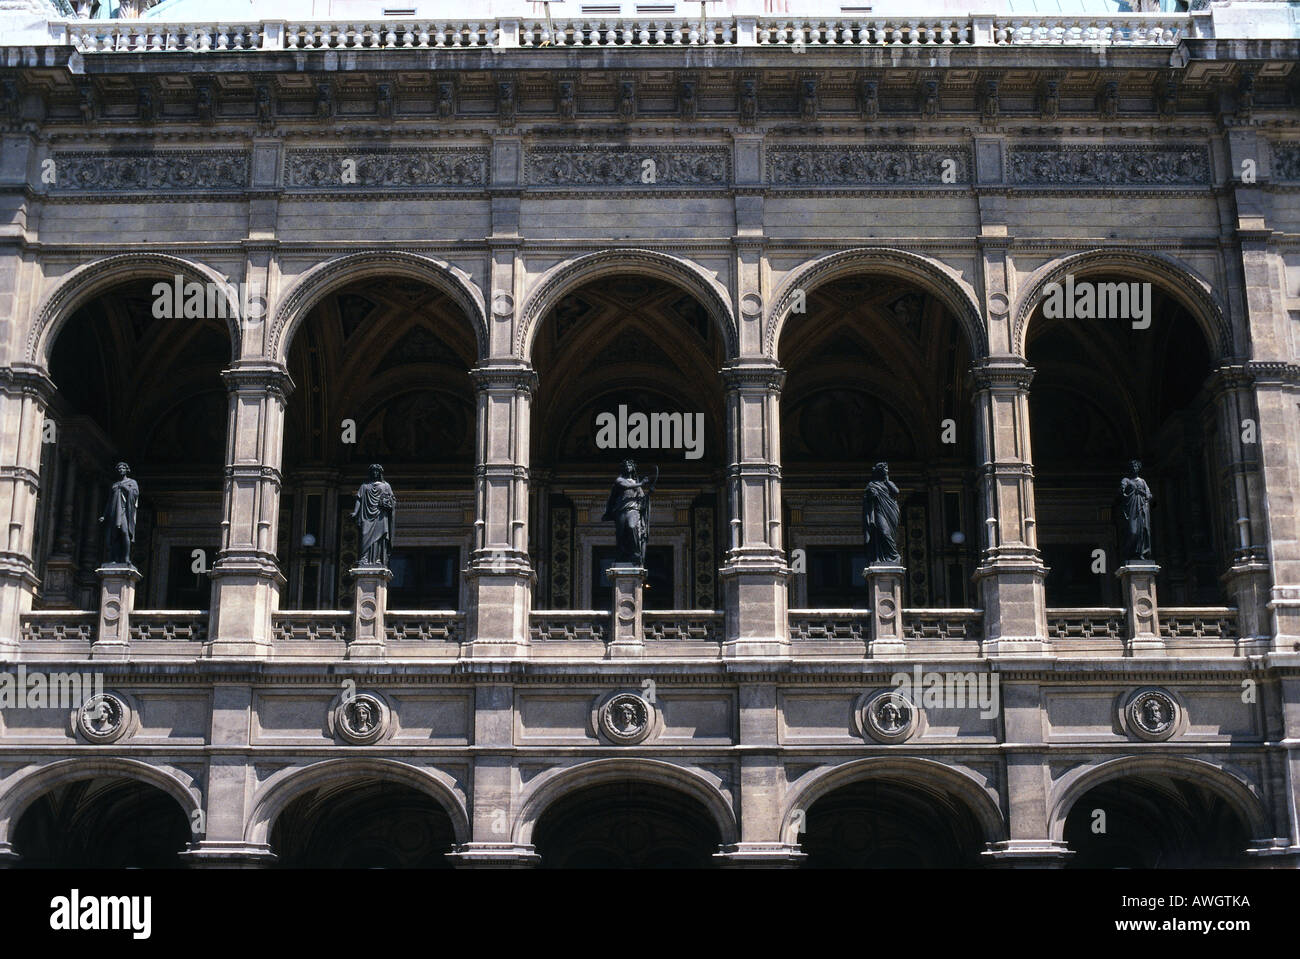 Austria, Vienna, Staatsoper (1869), loggia on Neo-Classical facade of Vienna State Opera, - Stock Image